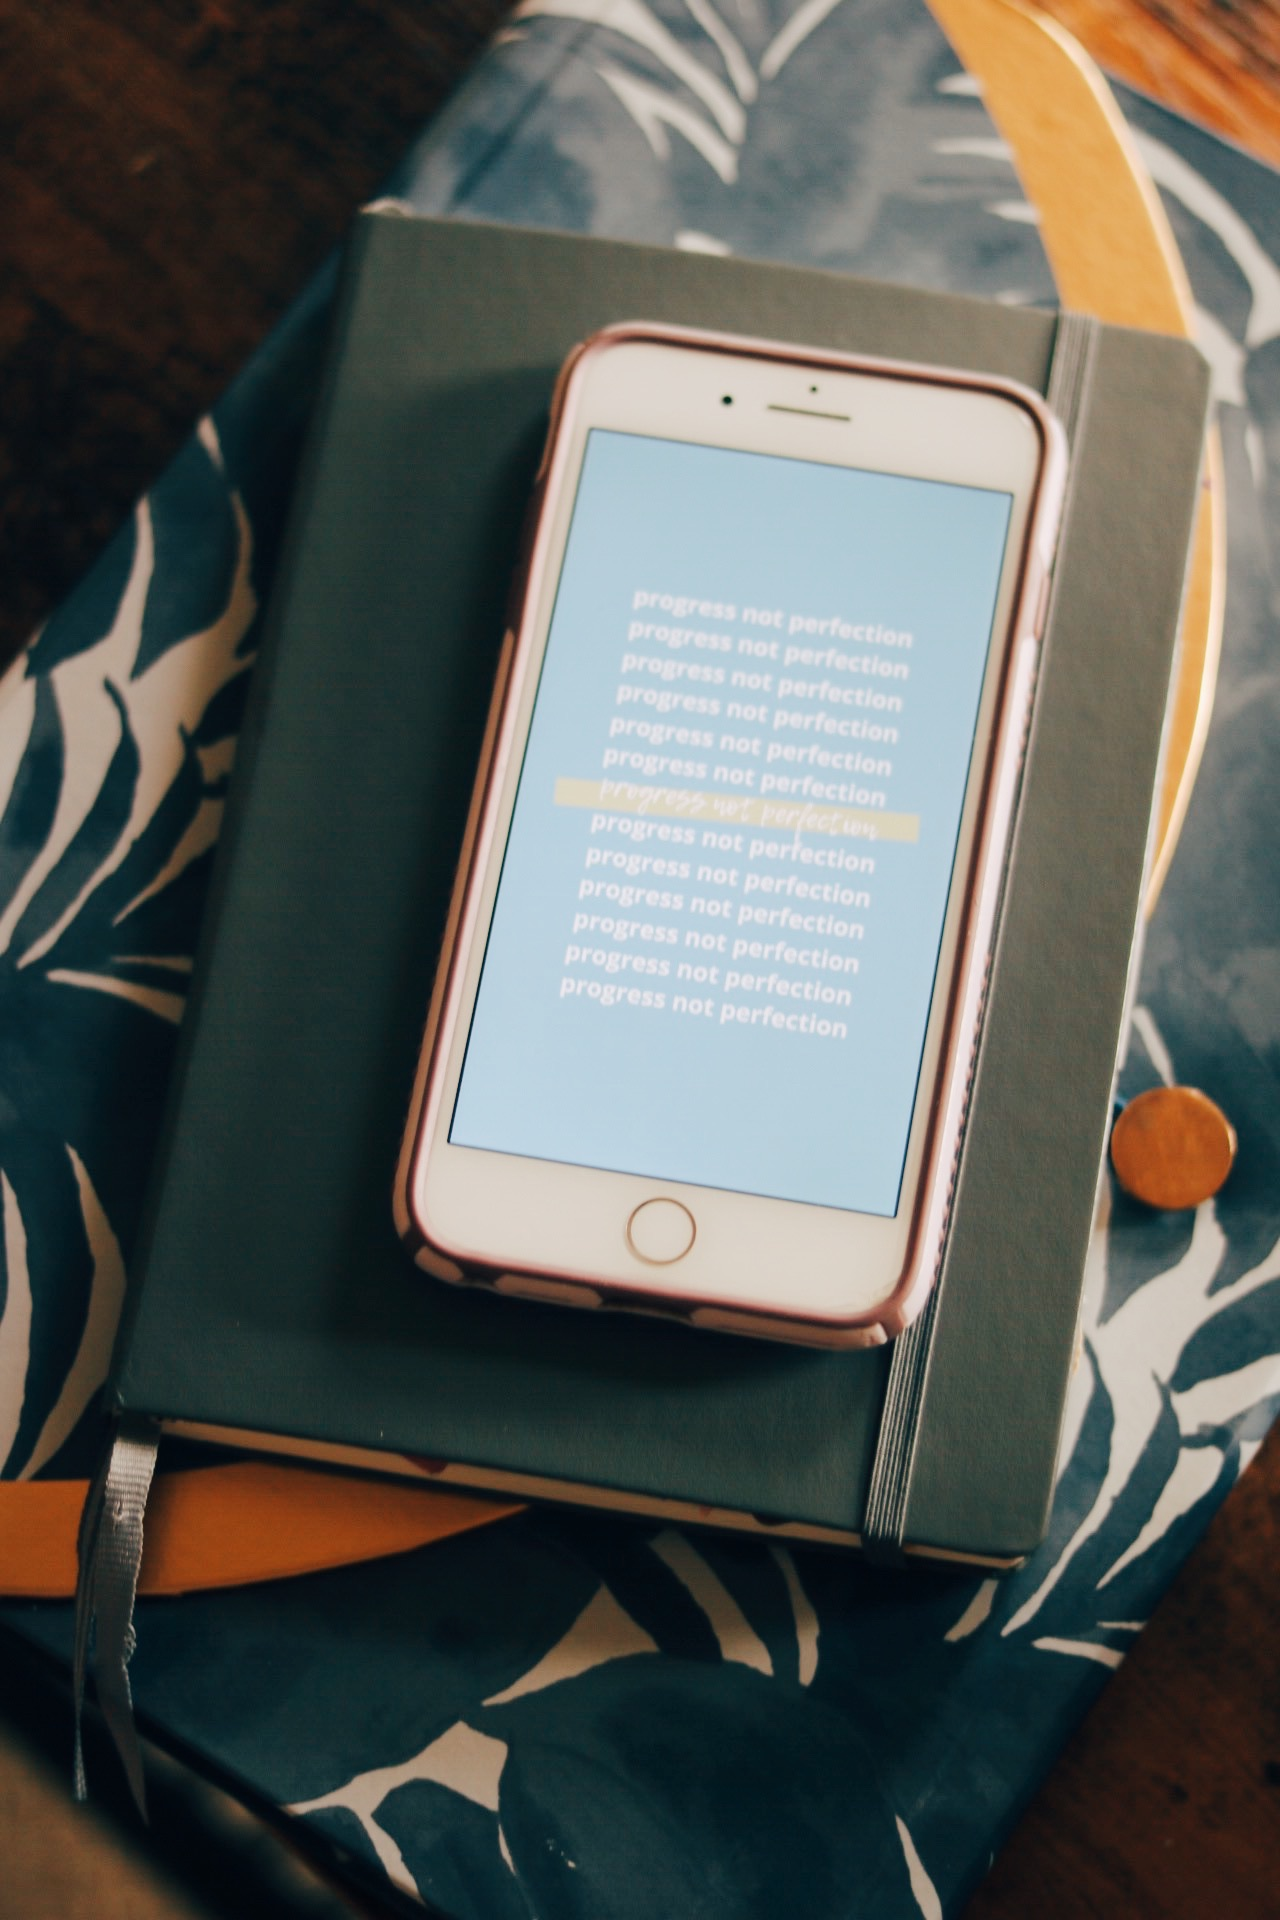 free iPhone backgrounds, monthly free iPhone backgrounds, email newsletter for women, am coffee collective